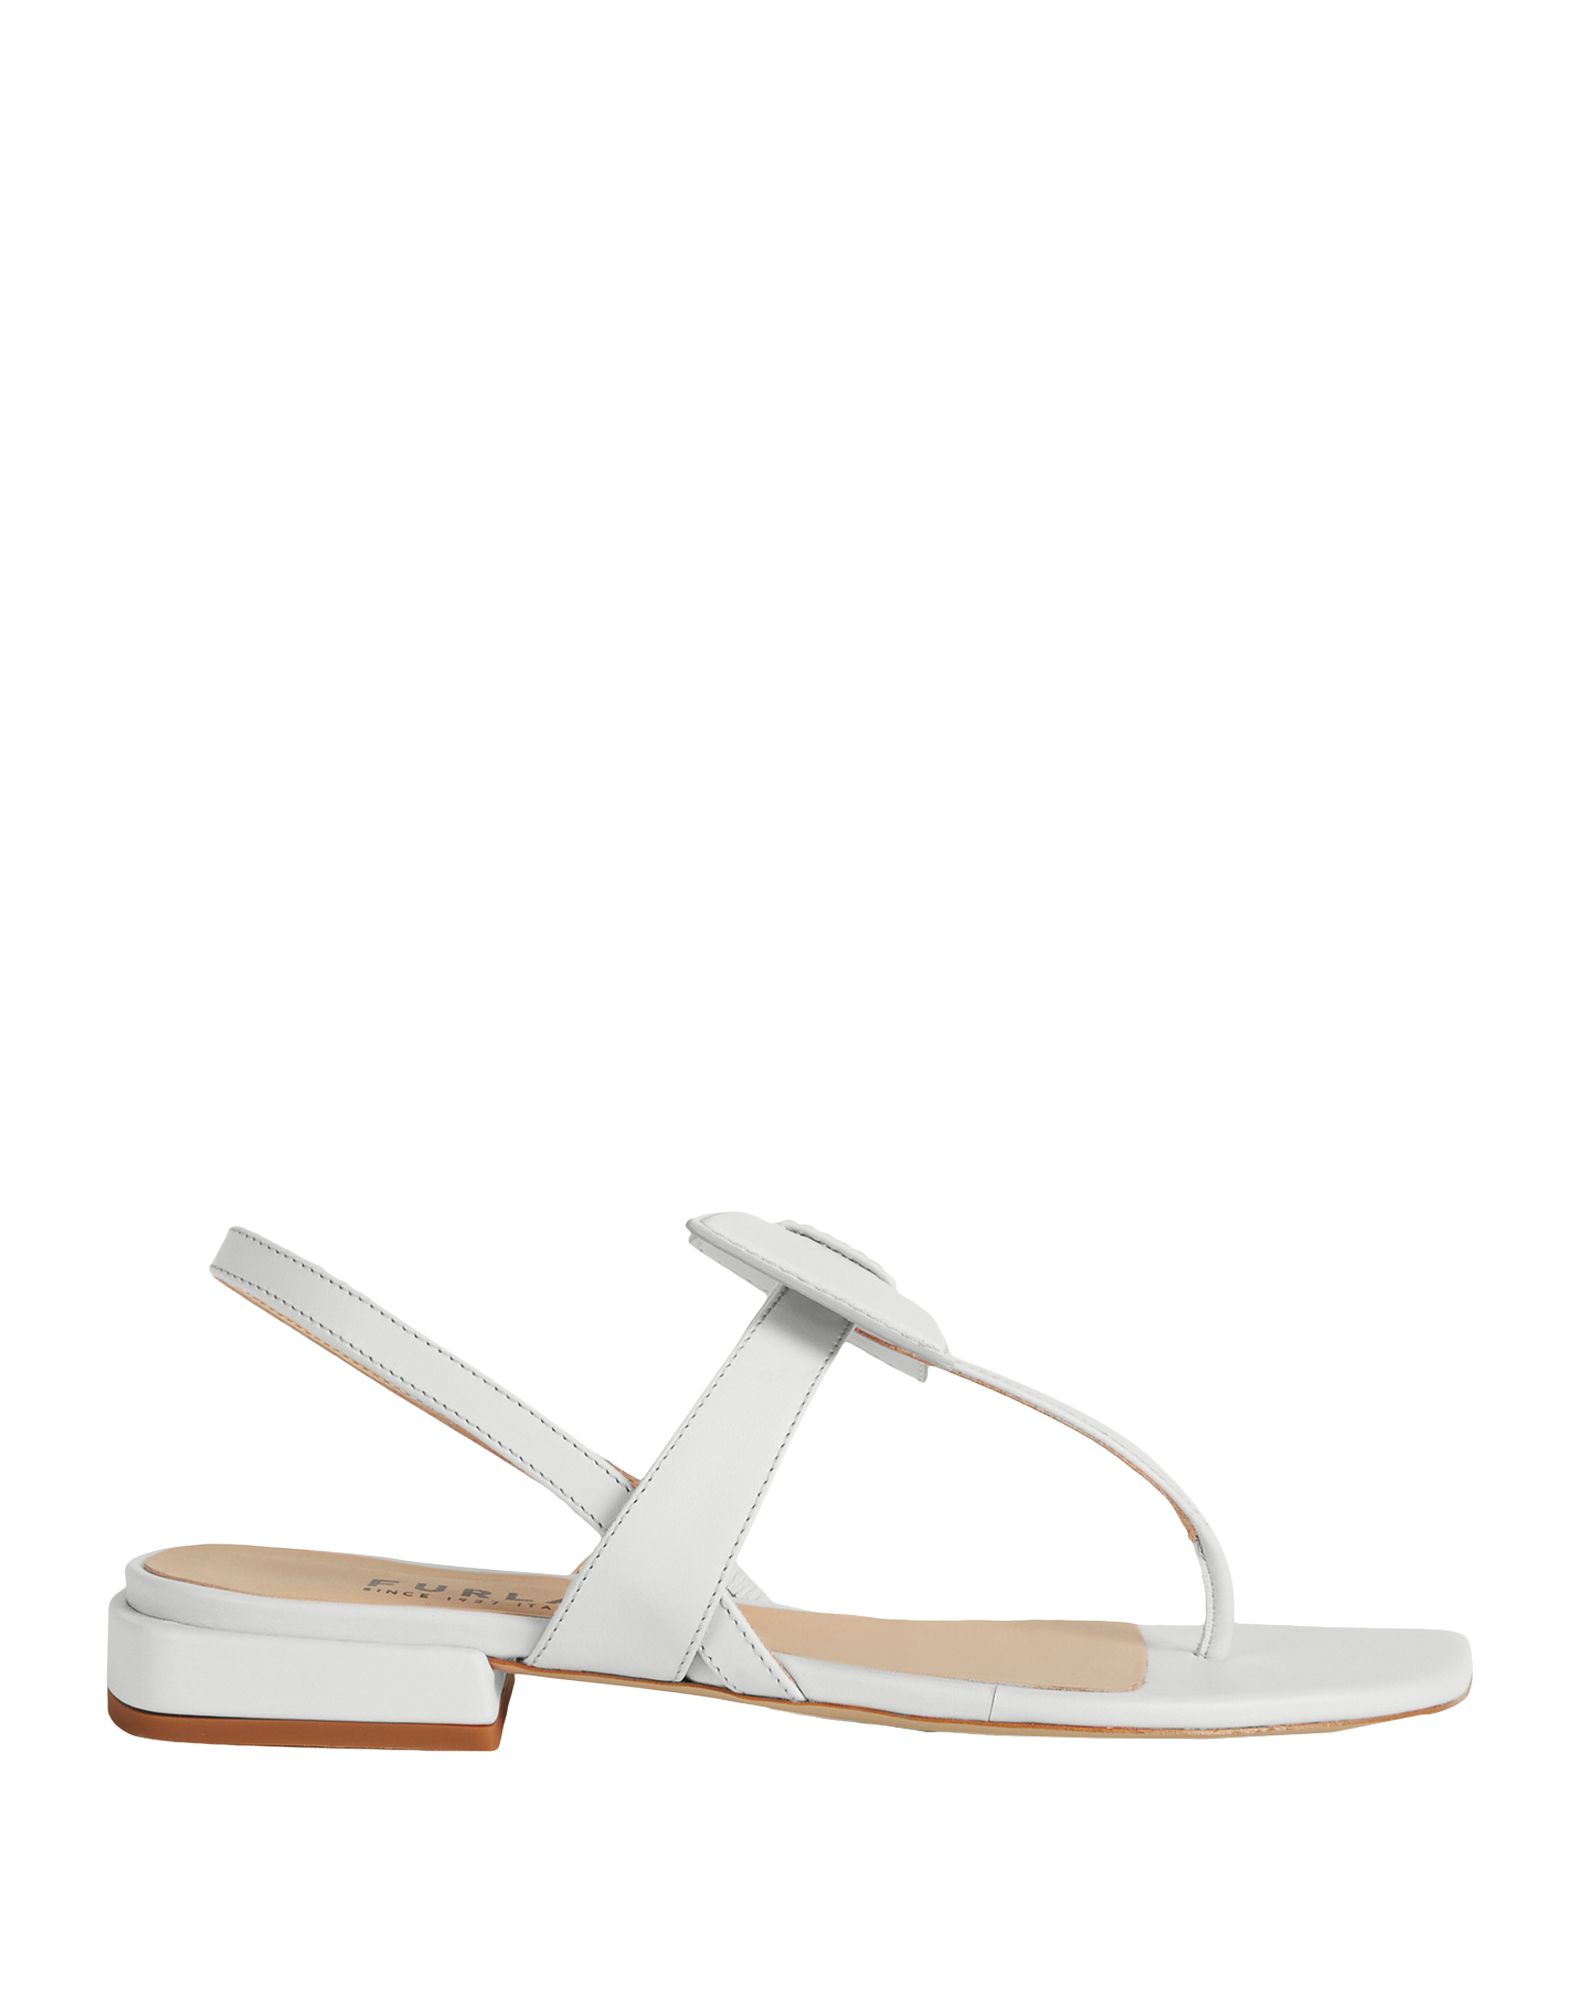 FURLA Toe strap sandals. bow-detailed, basic solid color, elasticized gores, square toeline, square heel, leather lining, rubber sole, contains non-textile parts of animal origin. 100% Soft Leather